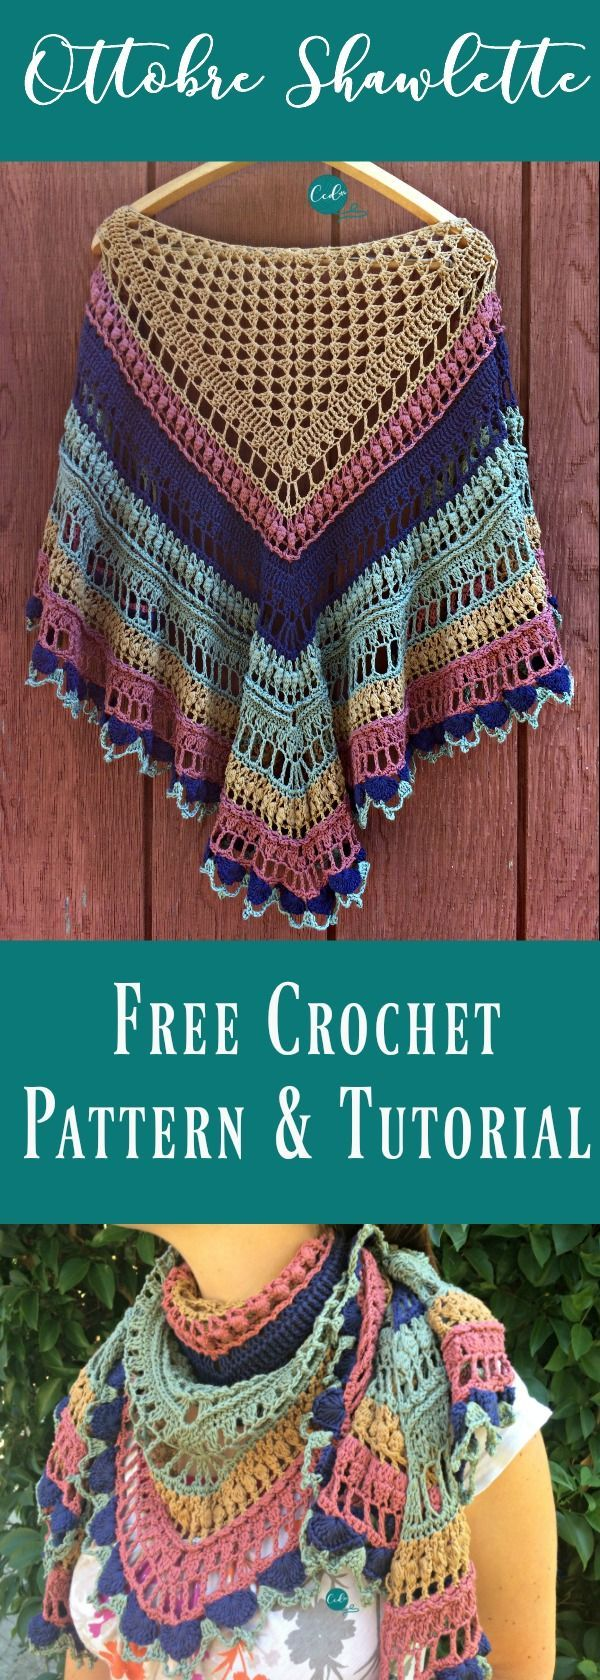 718 best crochet shawls and scarves images on pinterest crochet crochet shawlette pattern free tutorial shawl pattern free scarf pattern crochet crochet shawlette bankloansurffo Gallery